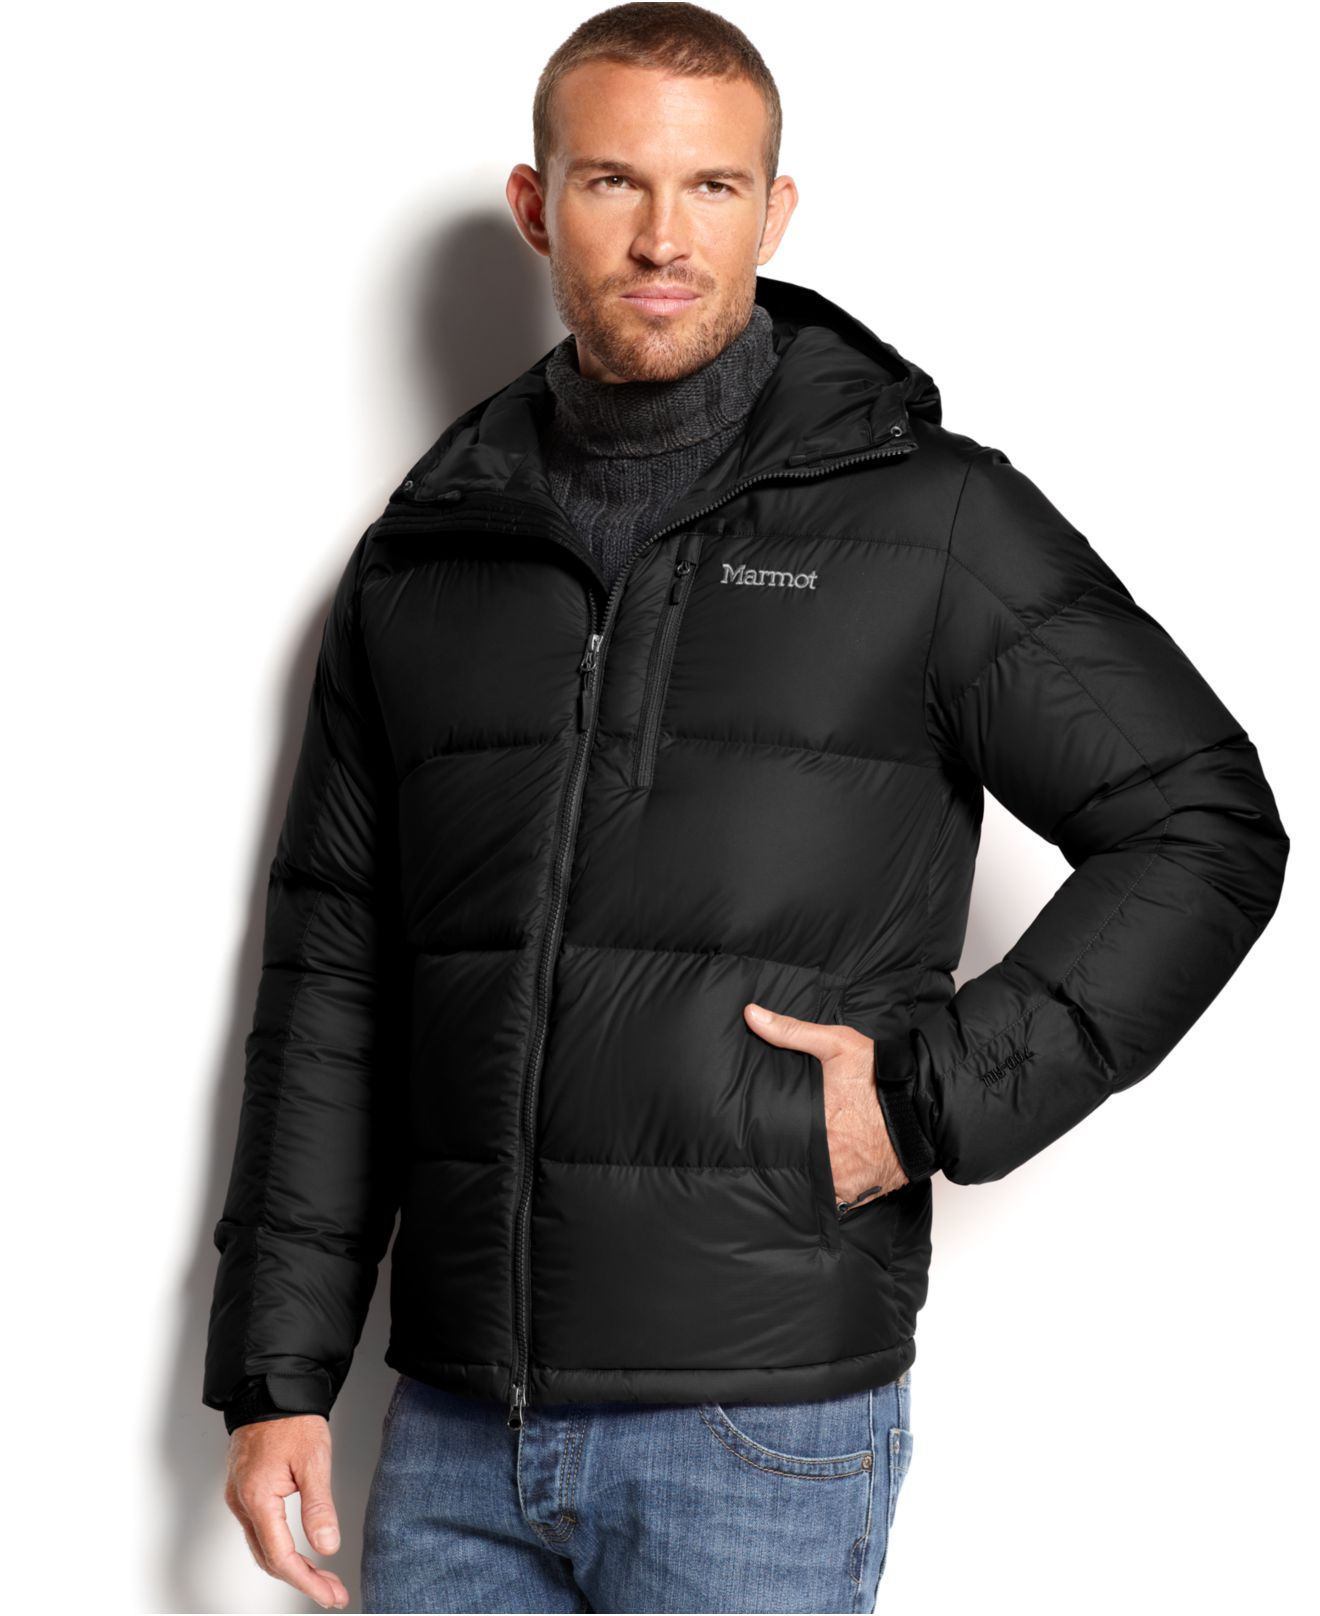 Waterproof Down Jacket For Men